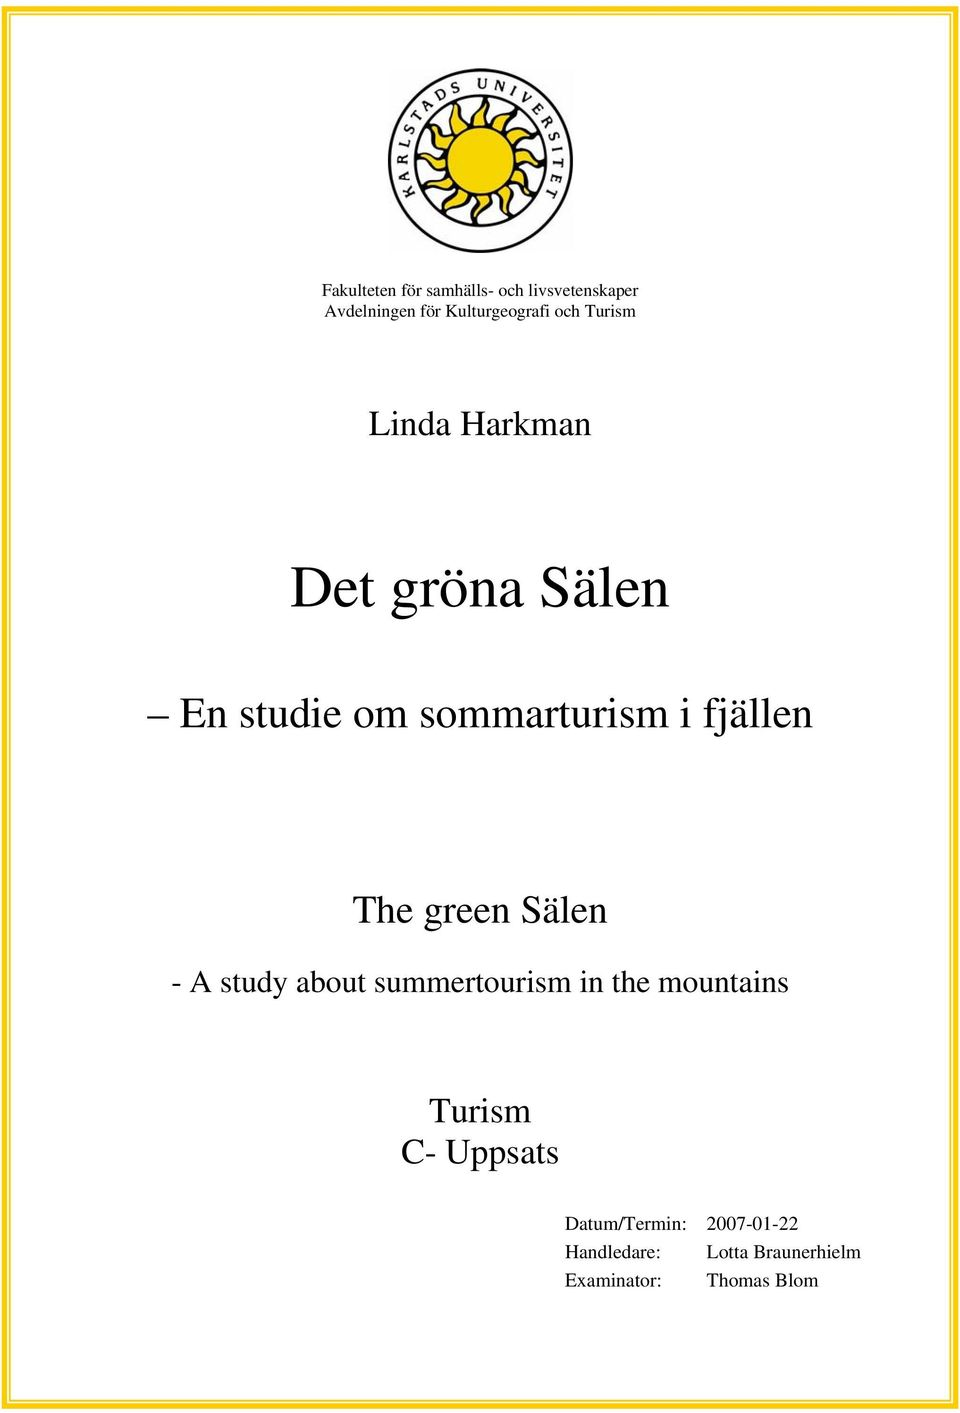 The green Sälen - A study about summertourism in the mountains Turism C-